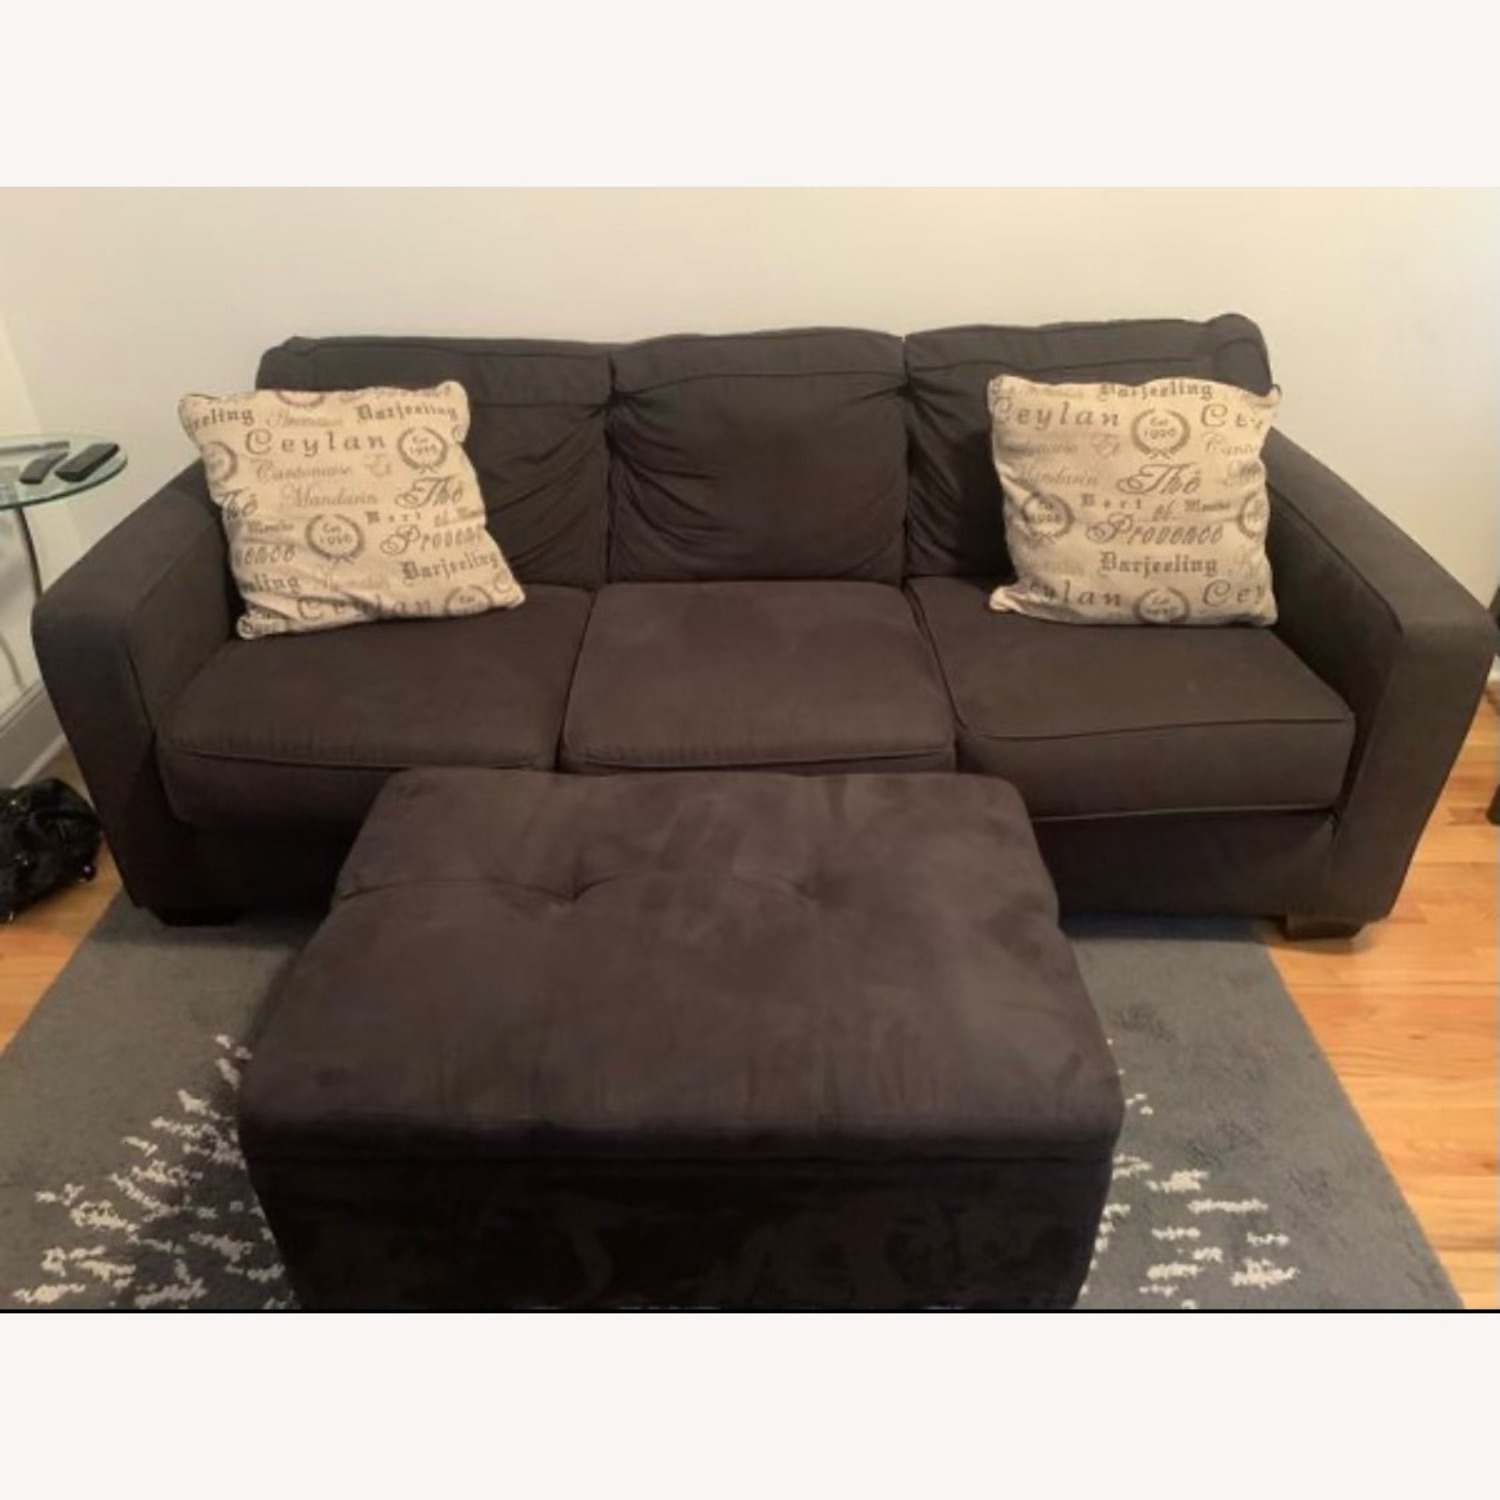 3 Seater Couch Black With Ottoman and 2 Pillows - image-4